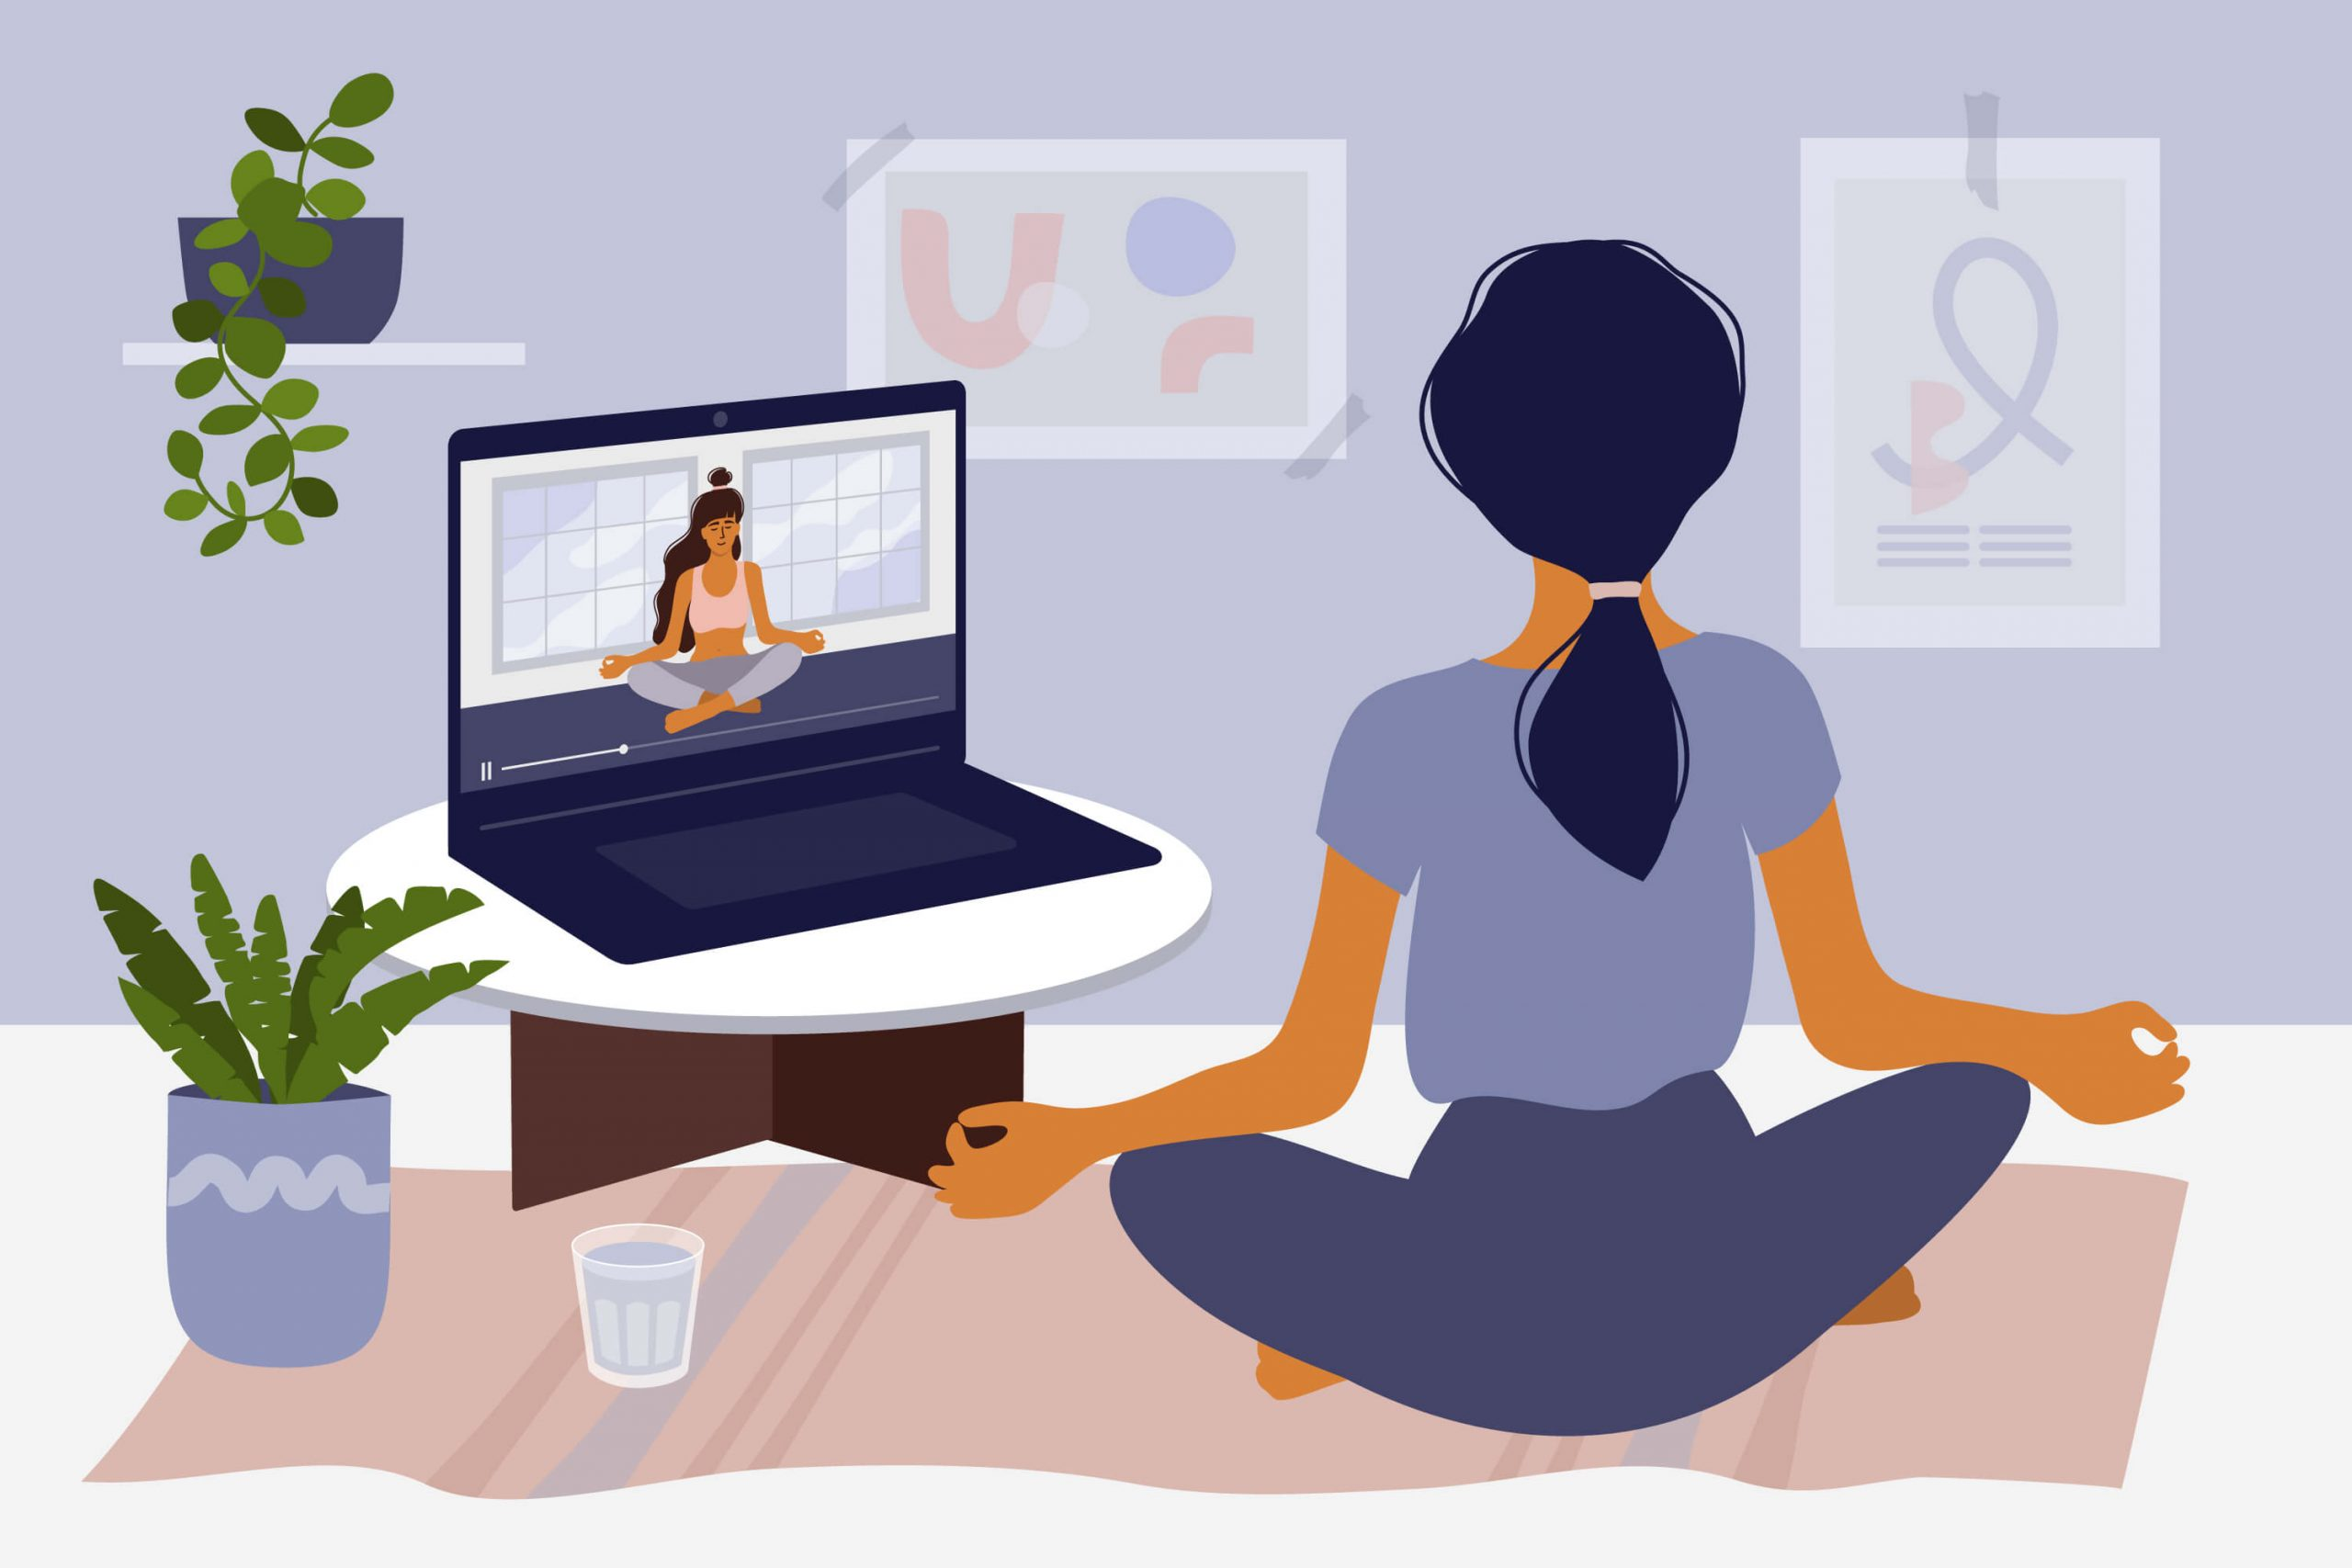 animated image of woman practicing virtual yoga